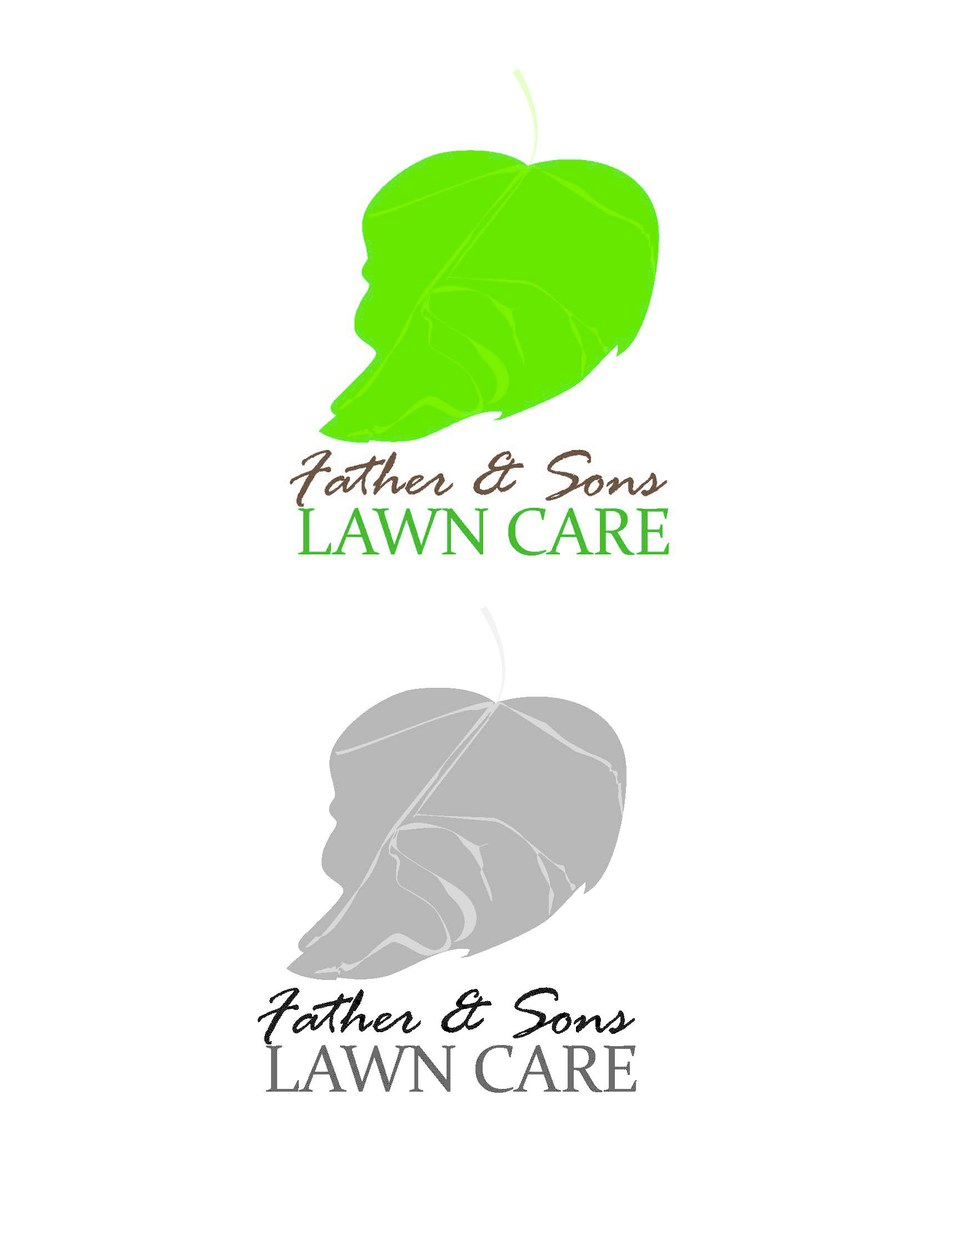 Final Father & Sons logo